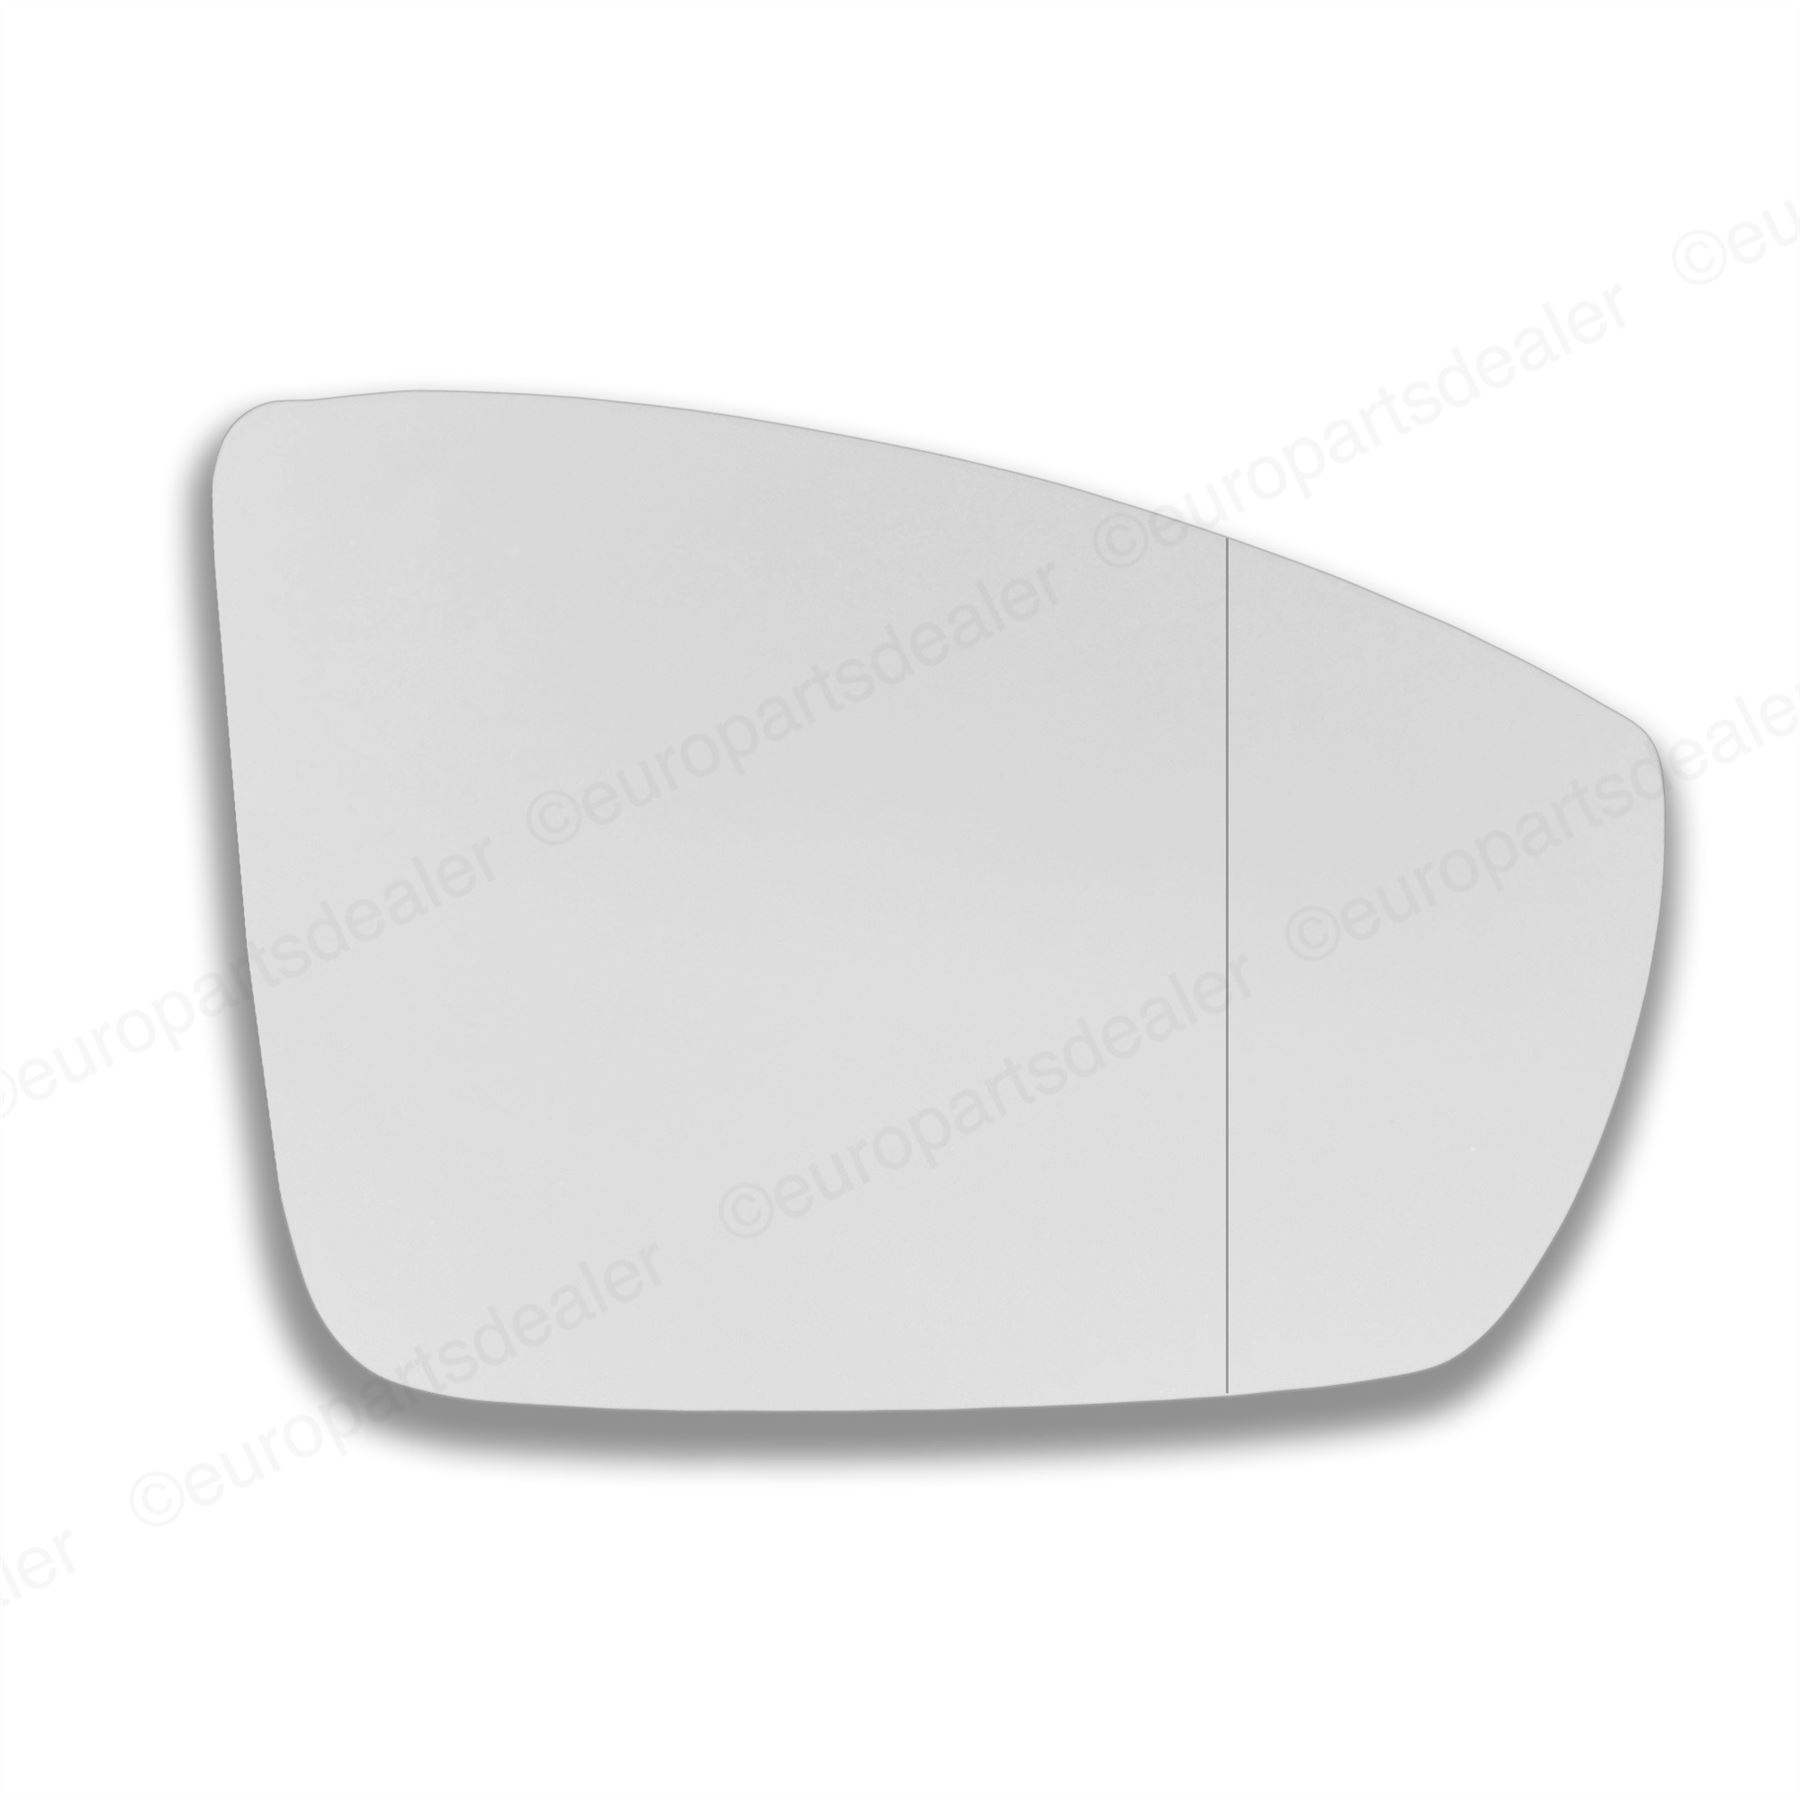 Driver Side WIDE ANGLE WING DOOR MIRROR GLASS For VW Polo 2009-On Stick On New